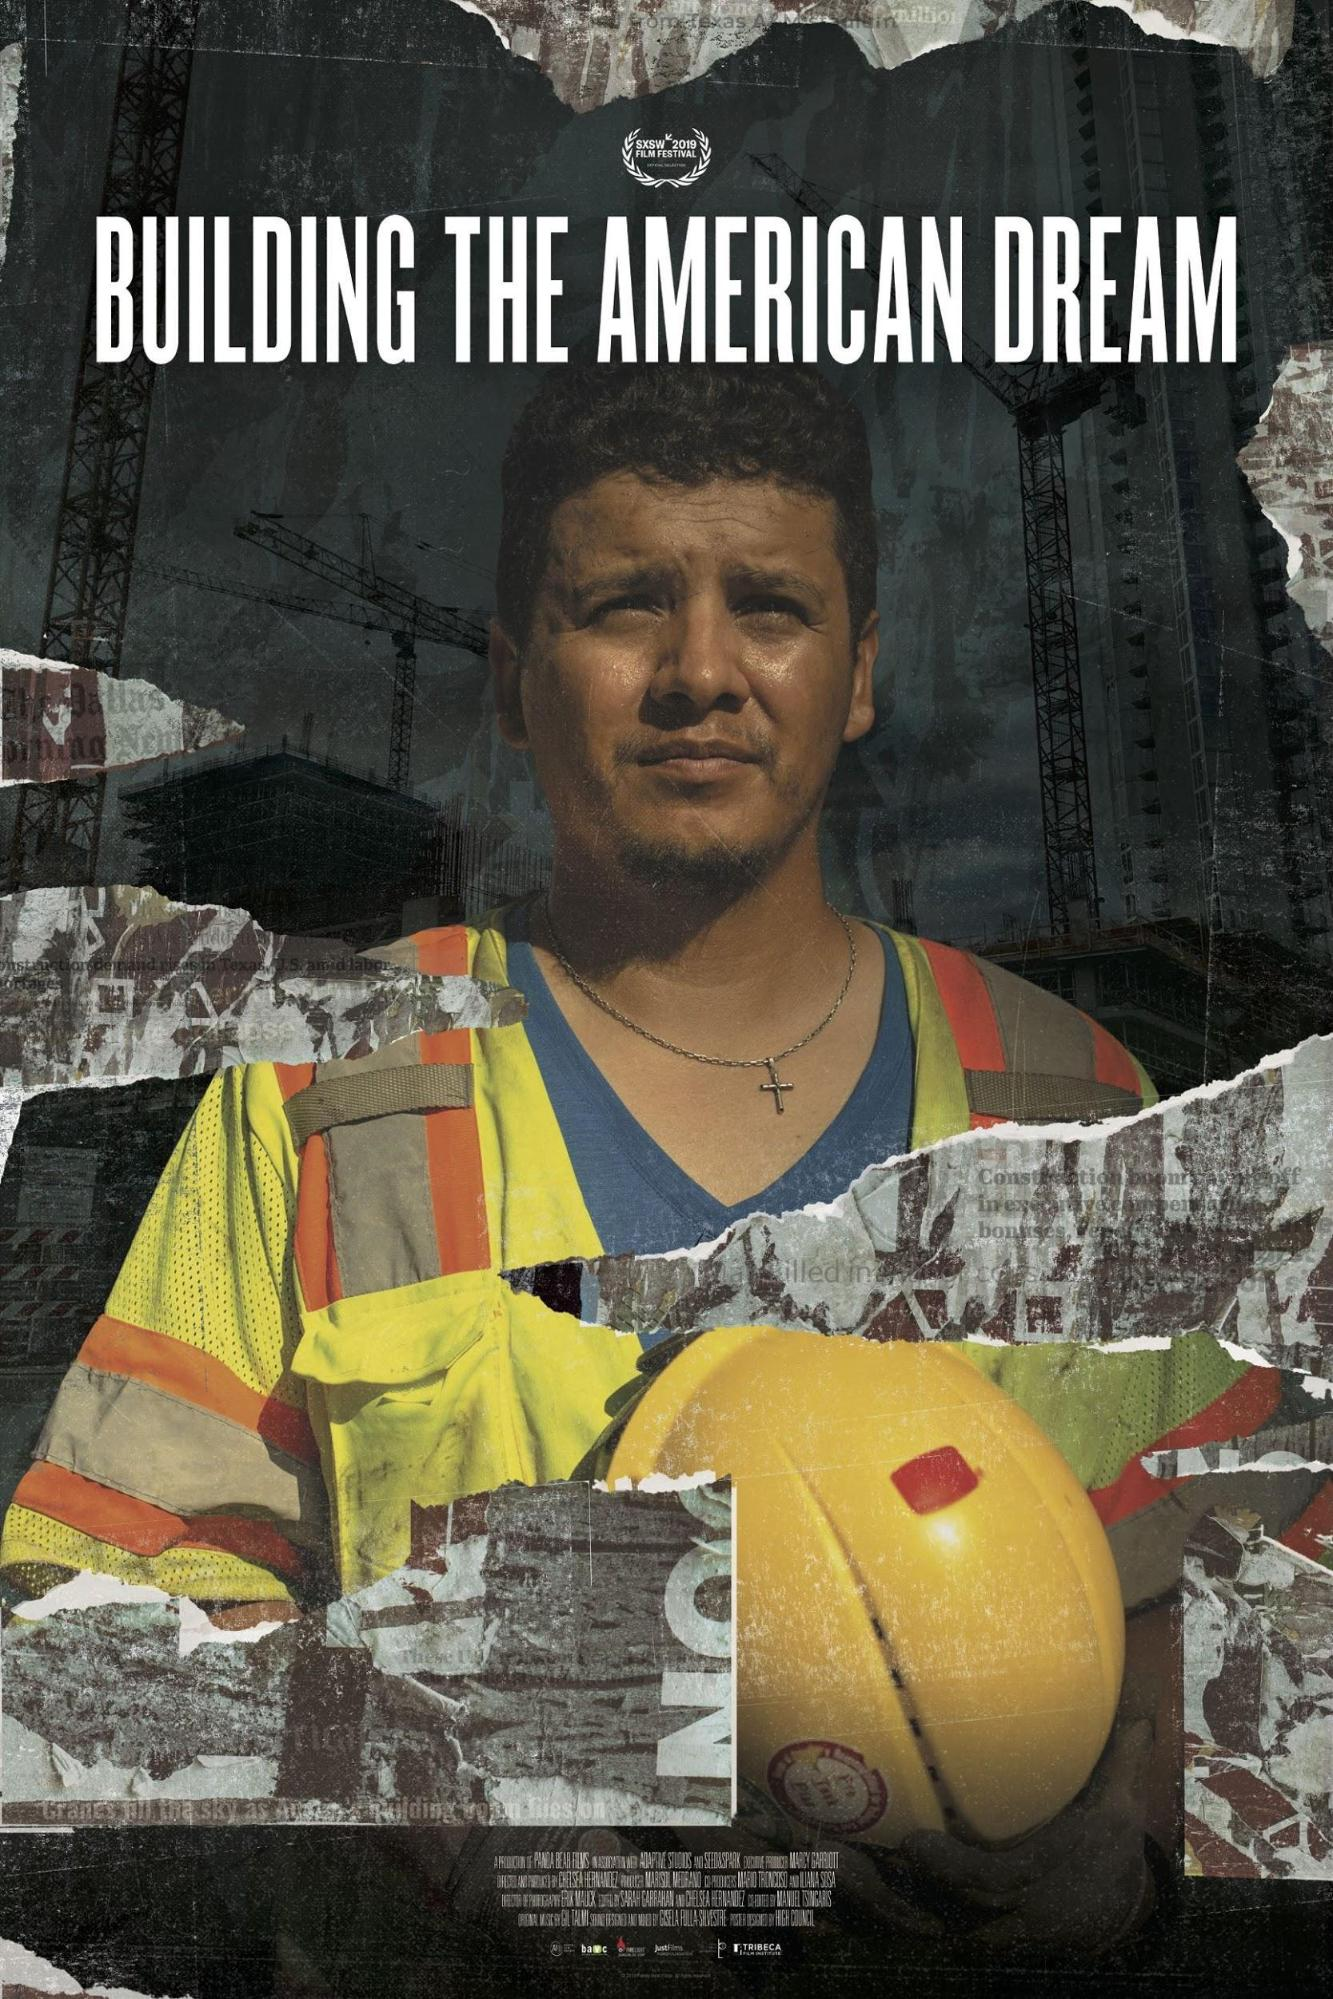 Building the American Dream - In Texas, construction workers face the deadliest conditions in the country. BUILDING THE AMERICAN DREAM is a feature documentary that follows three immigrant families who are rising up to seek justice and equality in an industry rife with exploitation.